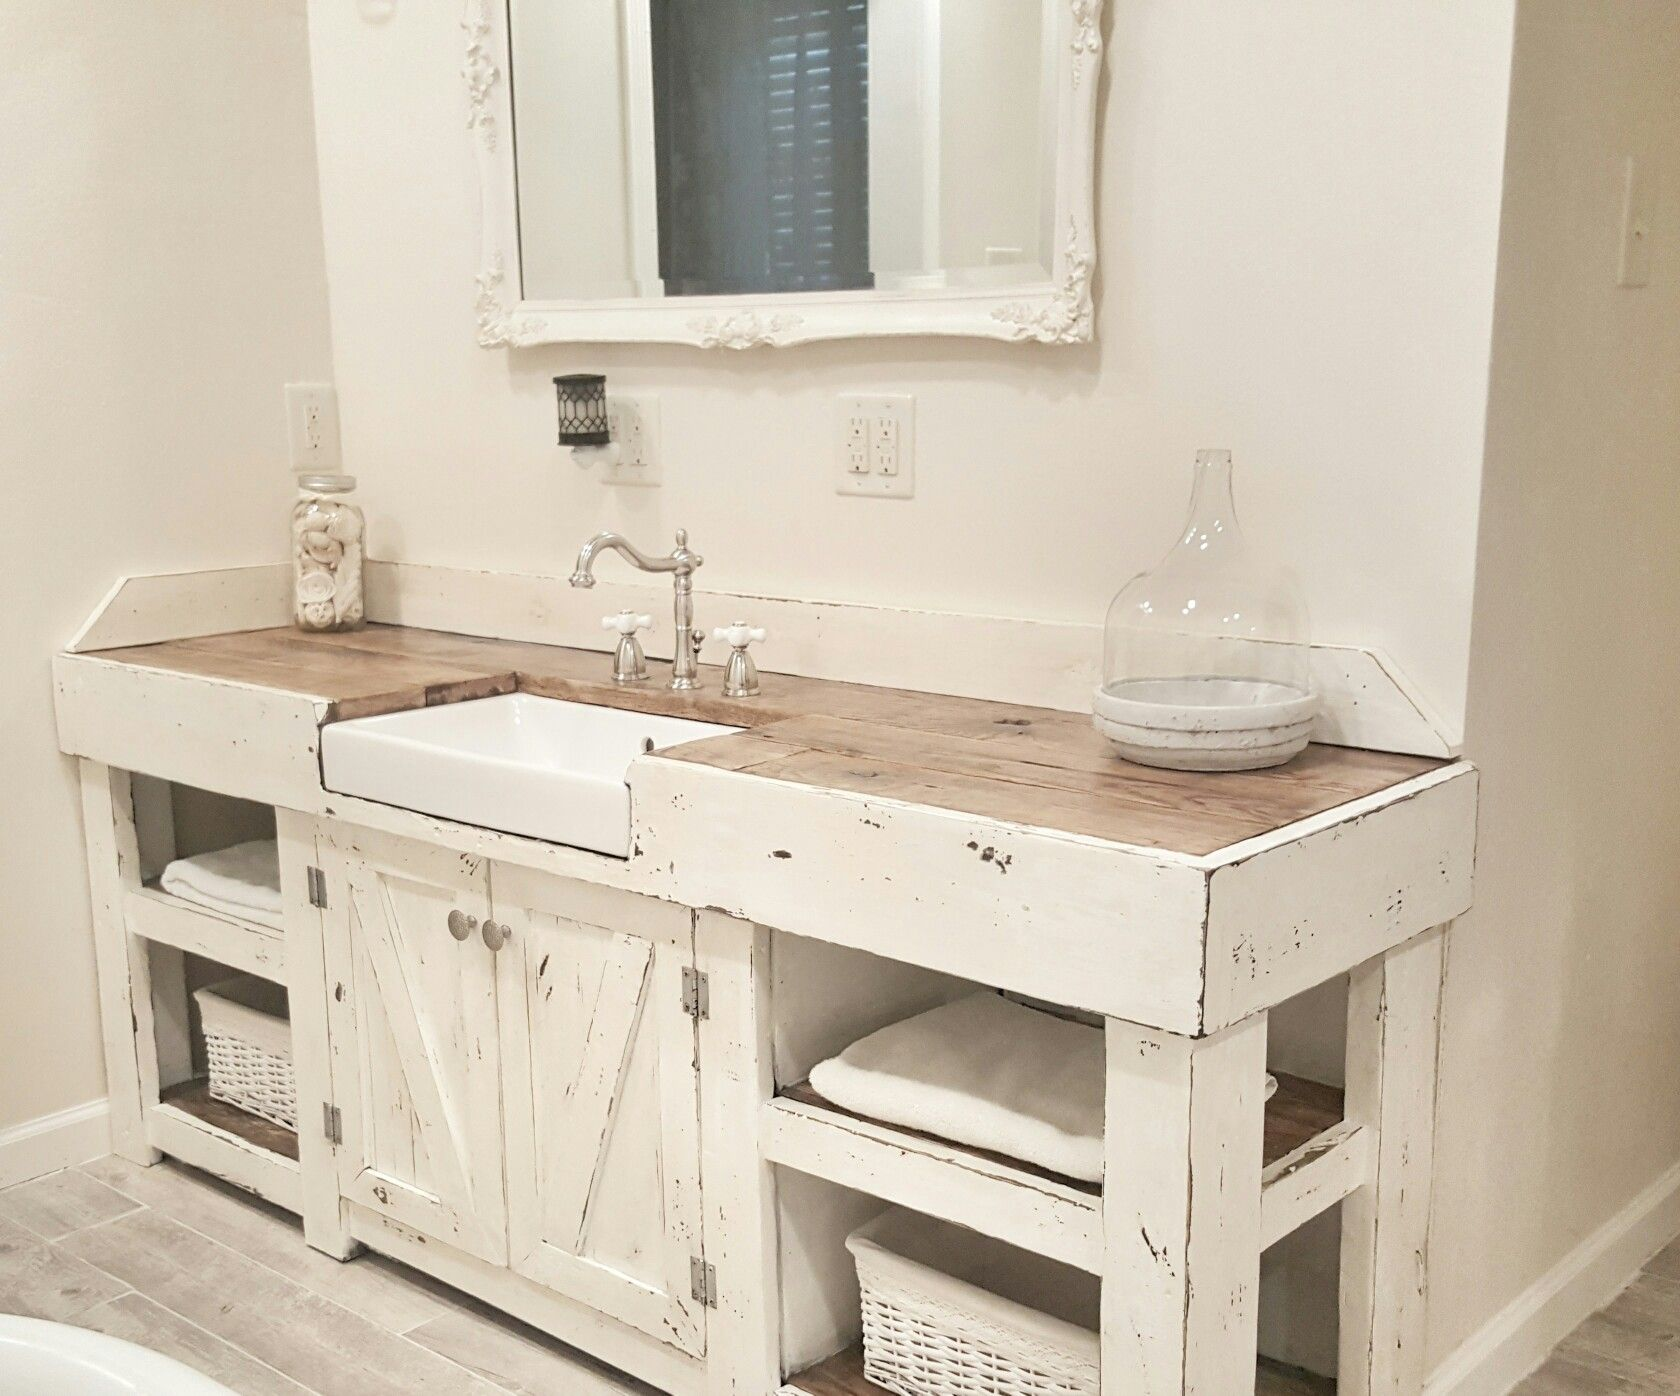 Cottage Bathroom Farmhouse Bathroom Farmhouse Vanity Farmhouse Sink Bridal Suite